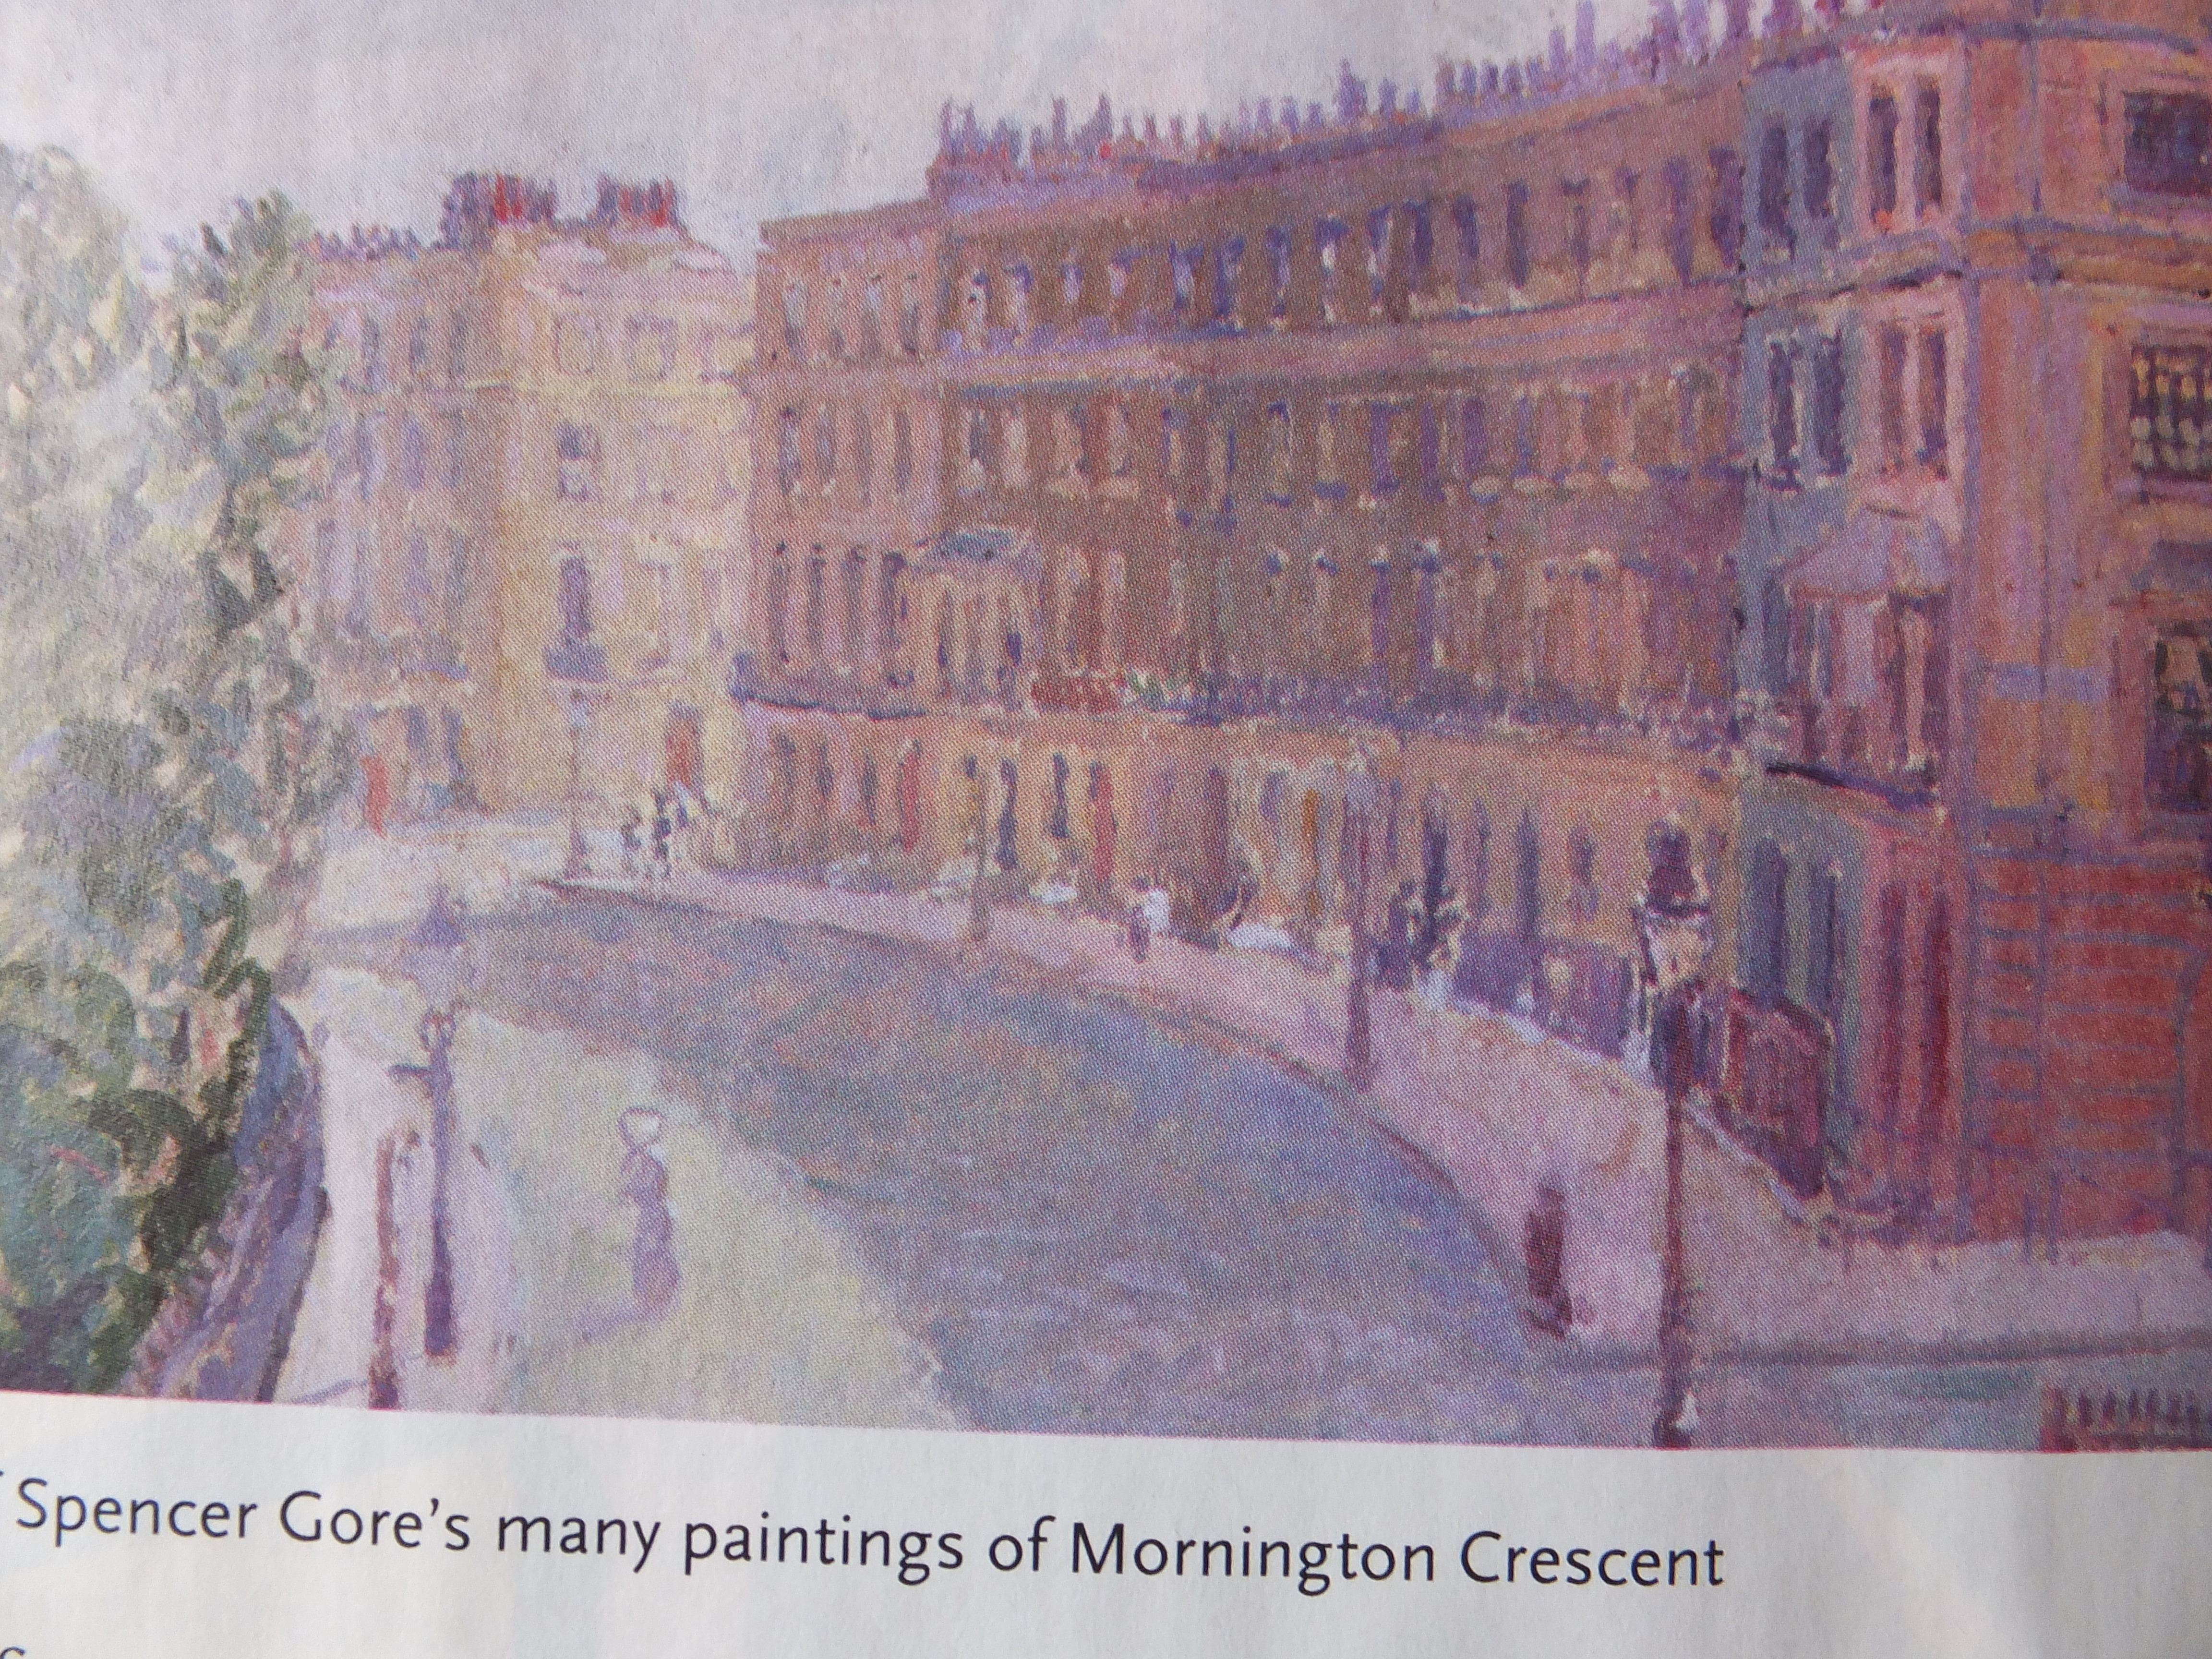 Mornington Crescent by Spencer Gore